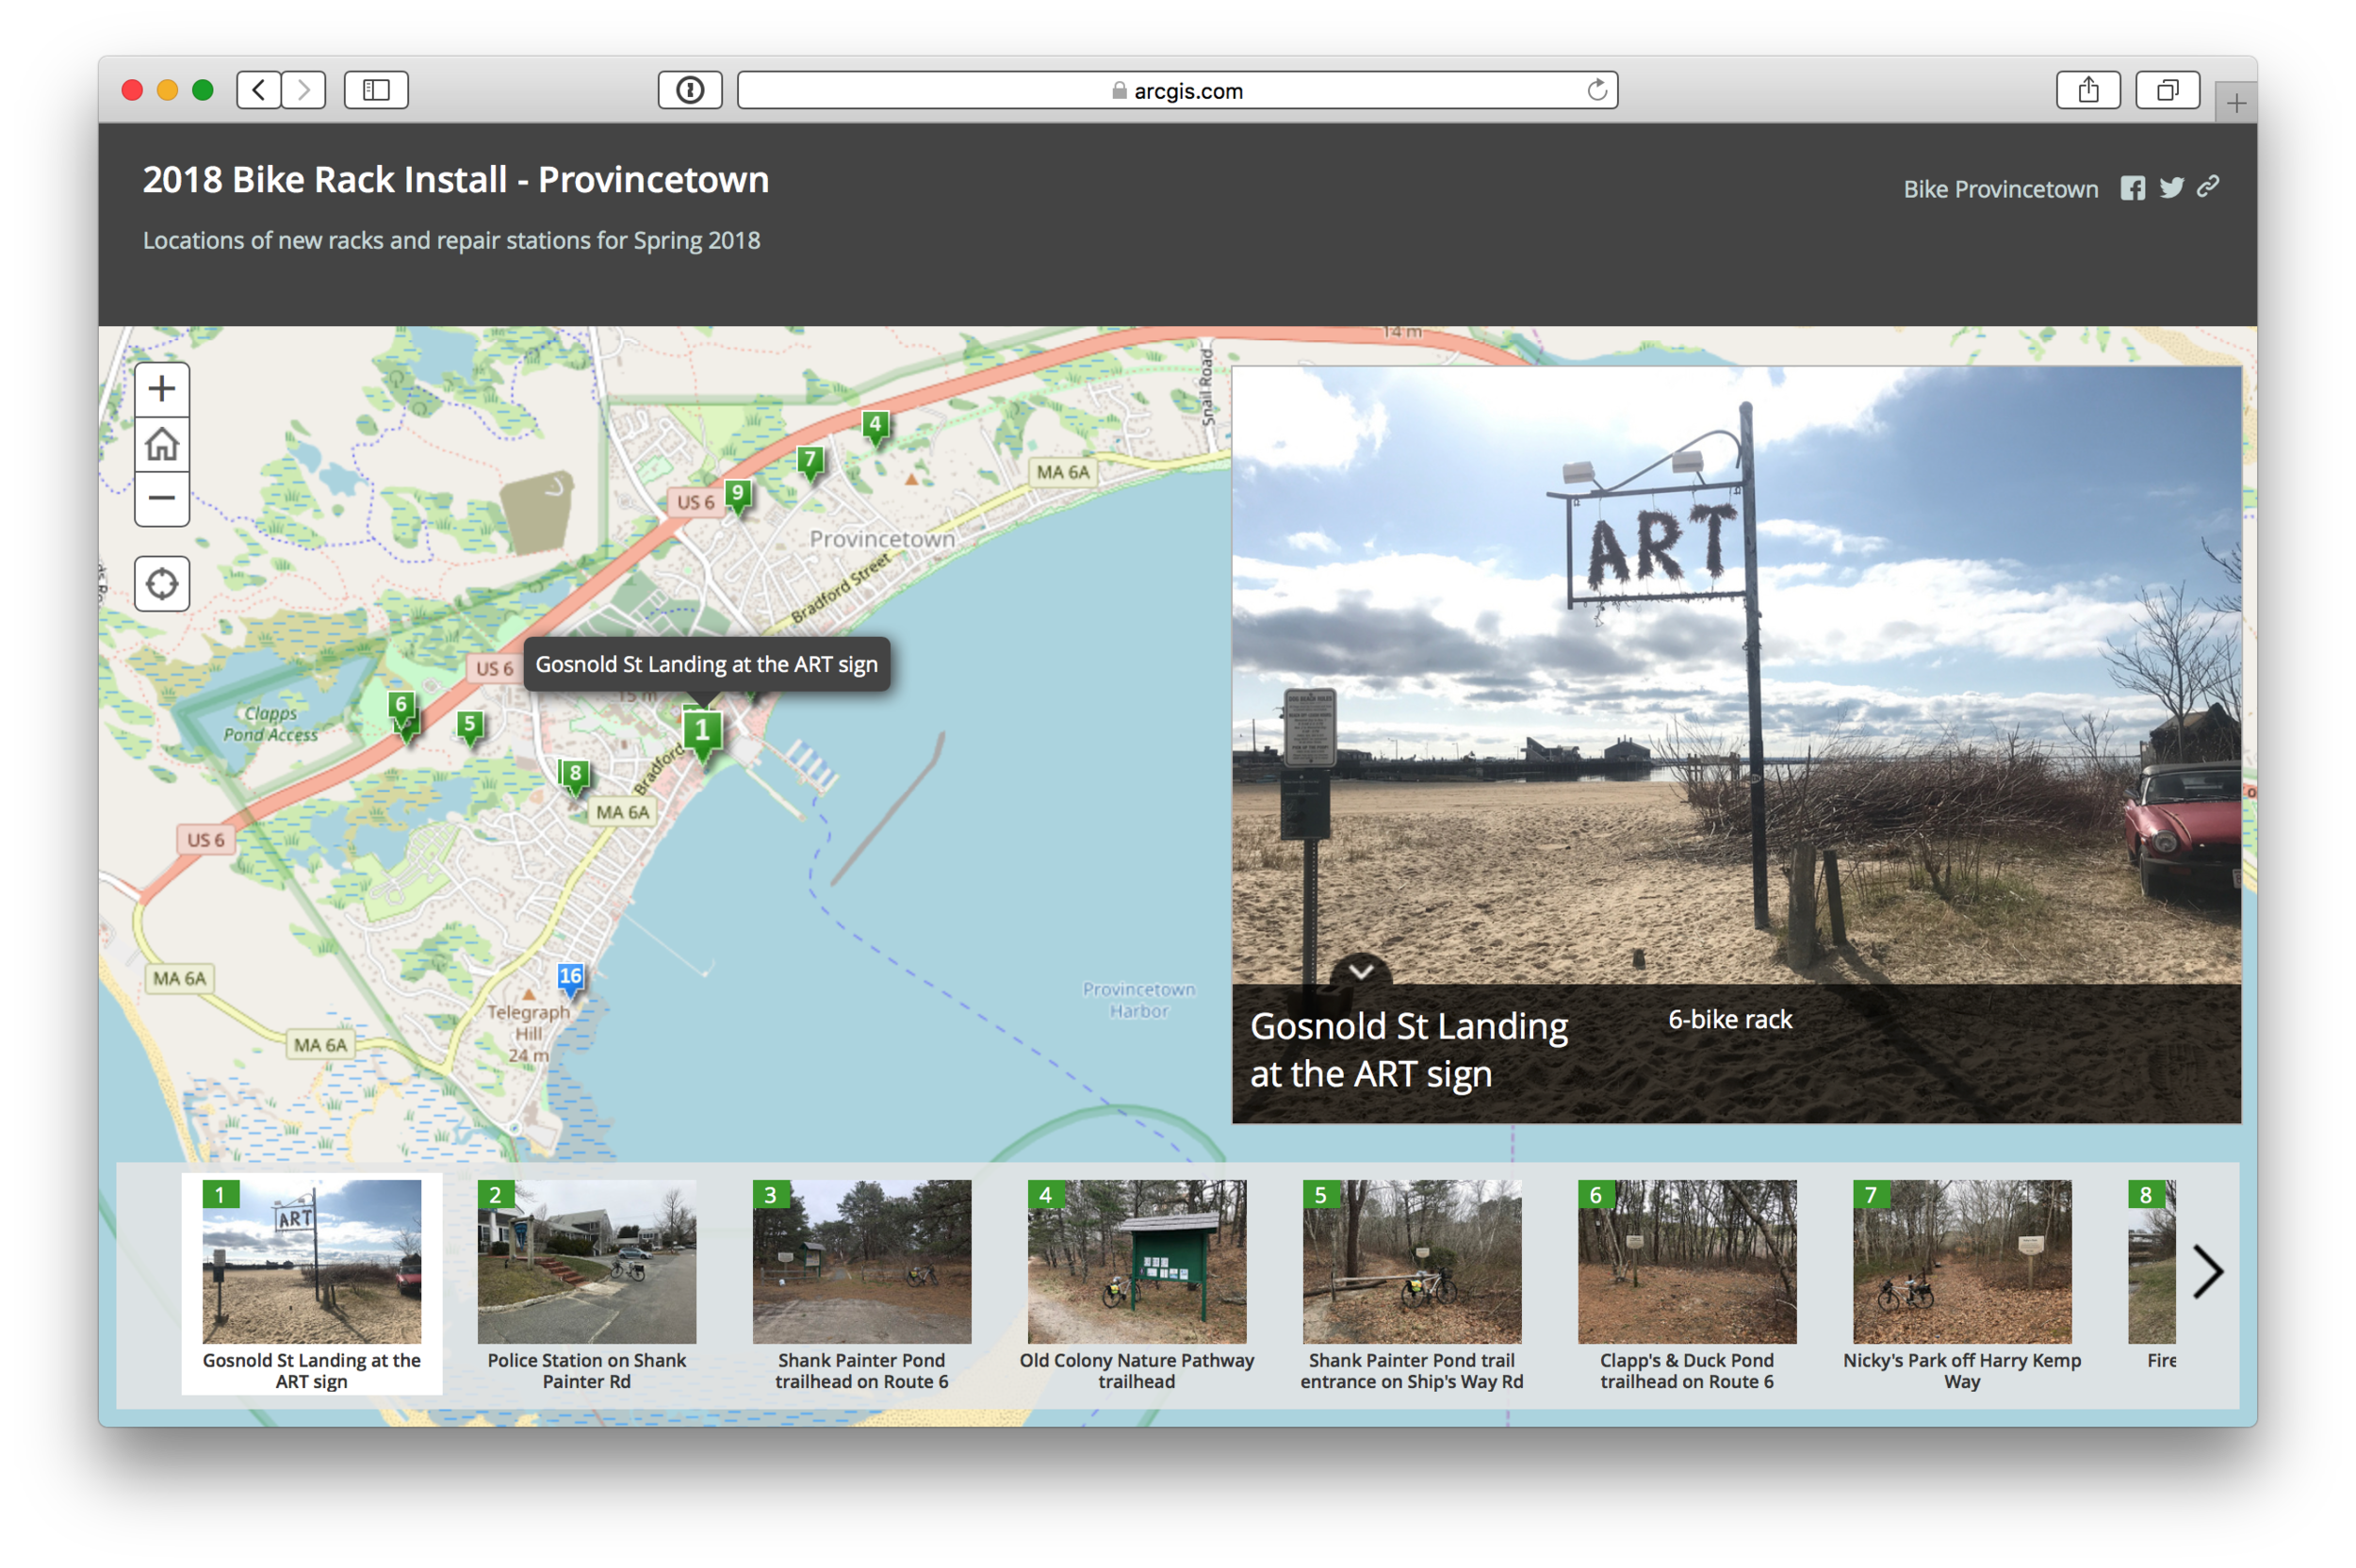 2018 Bike Rack Install Locations - Provincetown (story map)